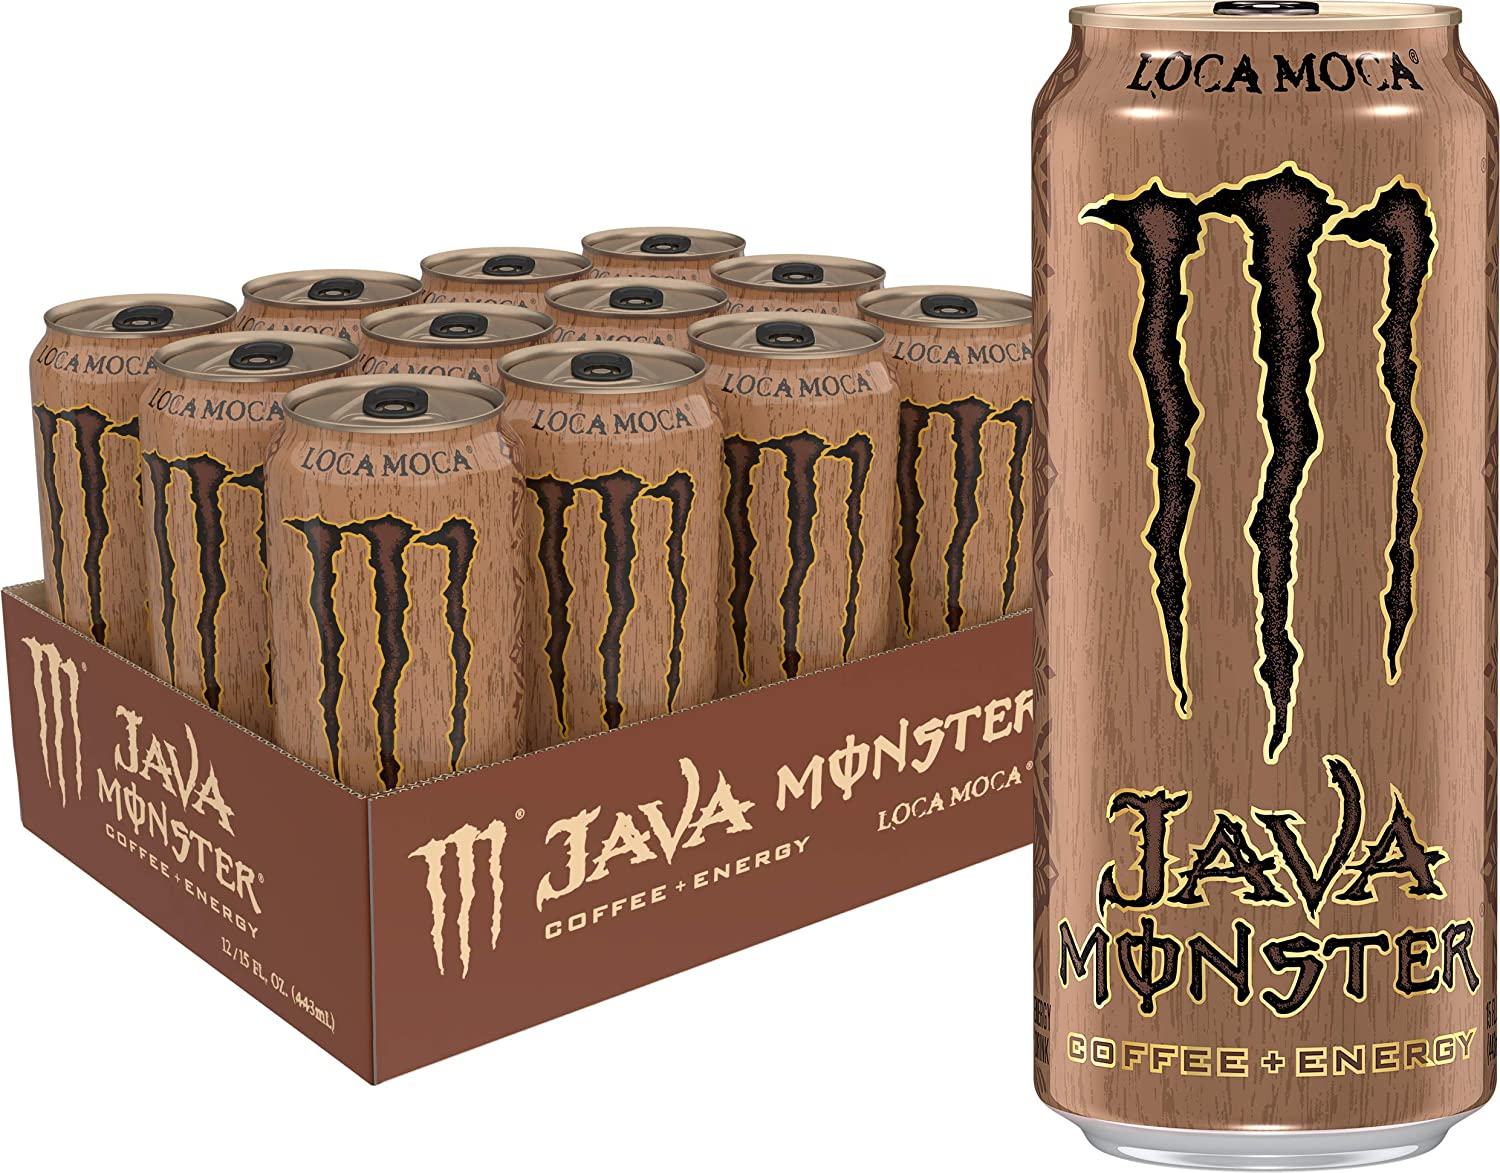 Java Monster Loca Moca, Coffee + Energy Drink, 15 Ounce (Pack of 12)